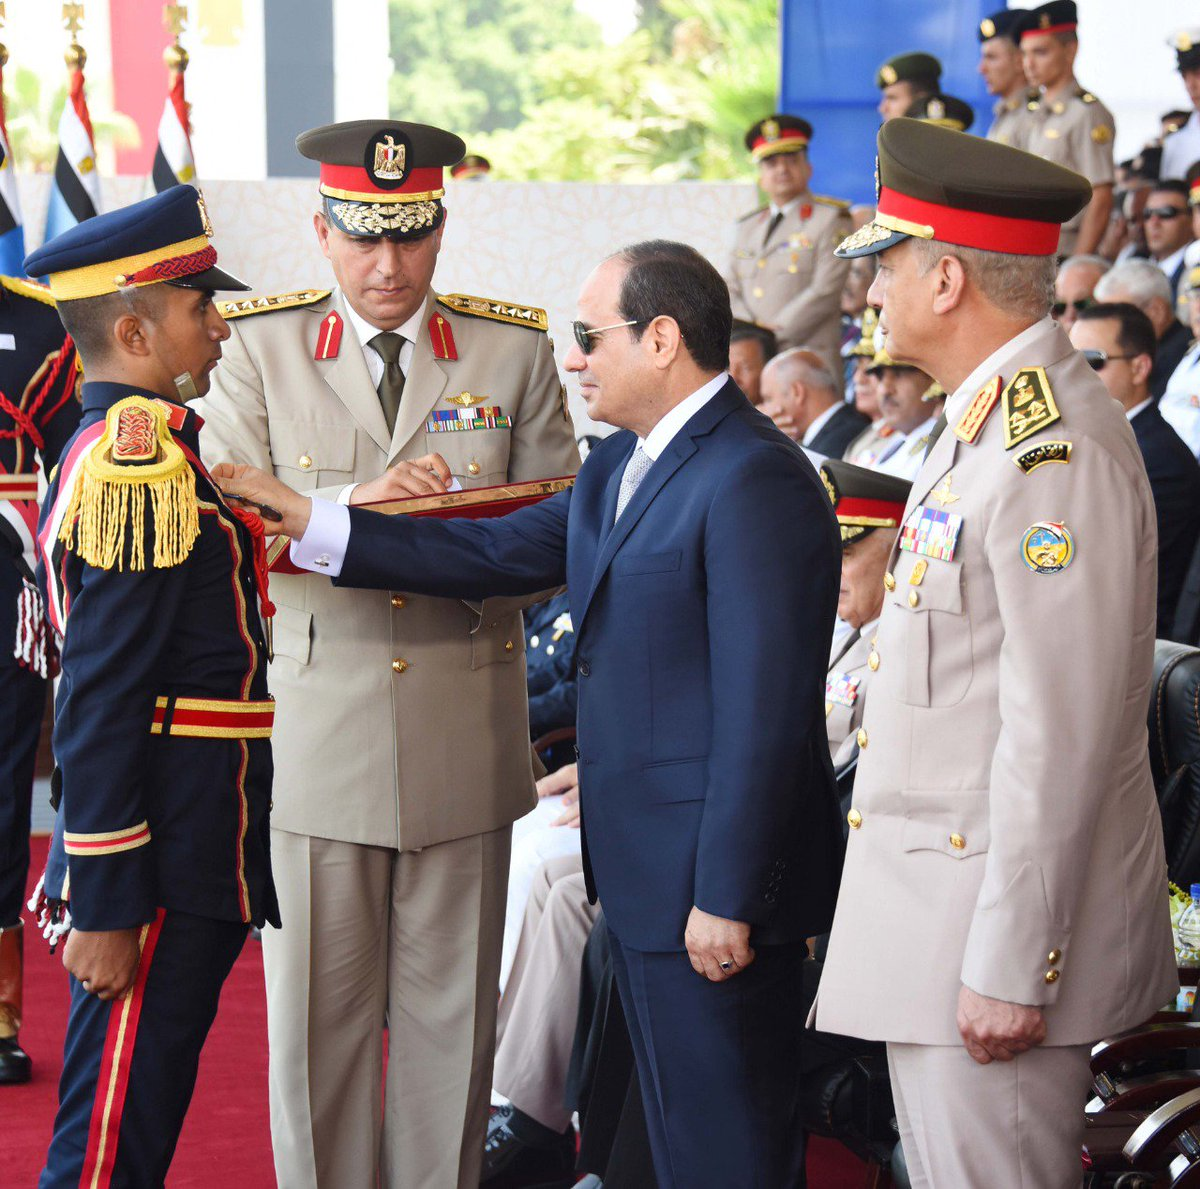 Sisi honors top graduates of the military schools and #PoliceAcadamy 👀 🇪🇬🇪🇬  #SEENews #Sisi @AlsisiOfficial